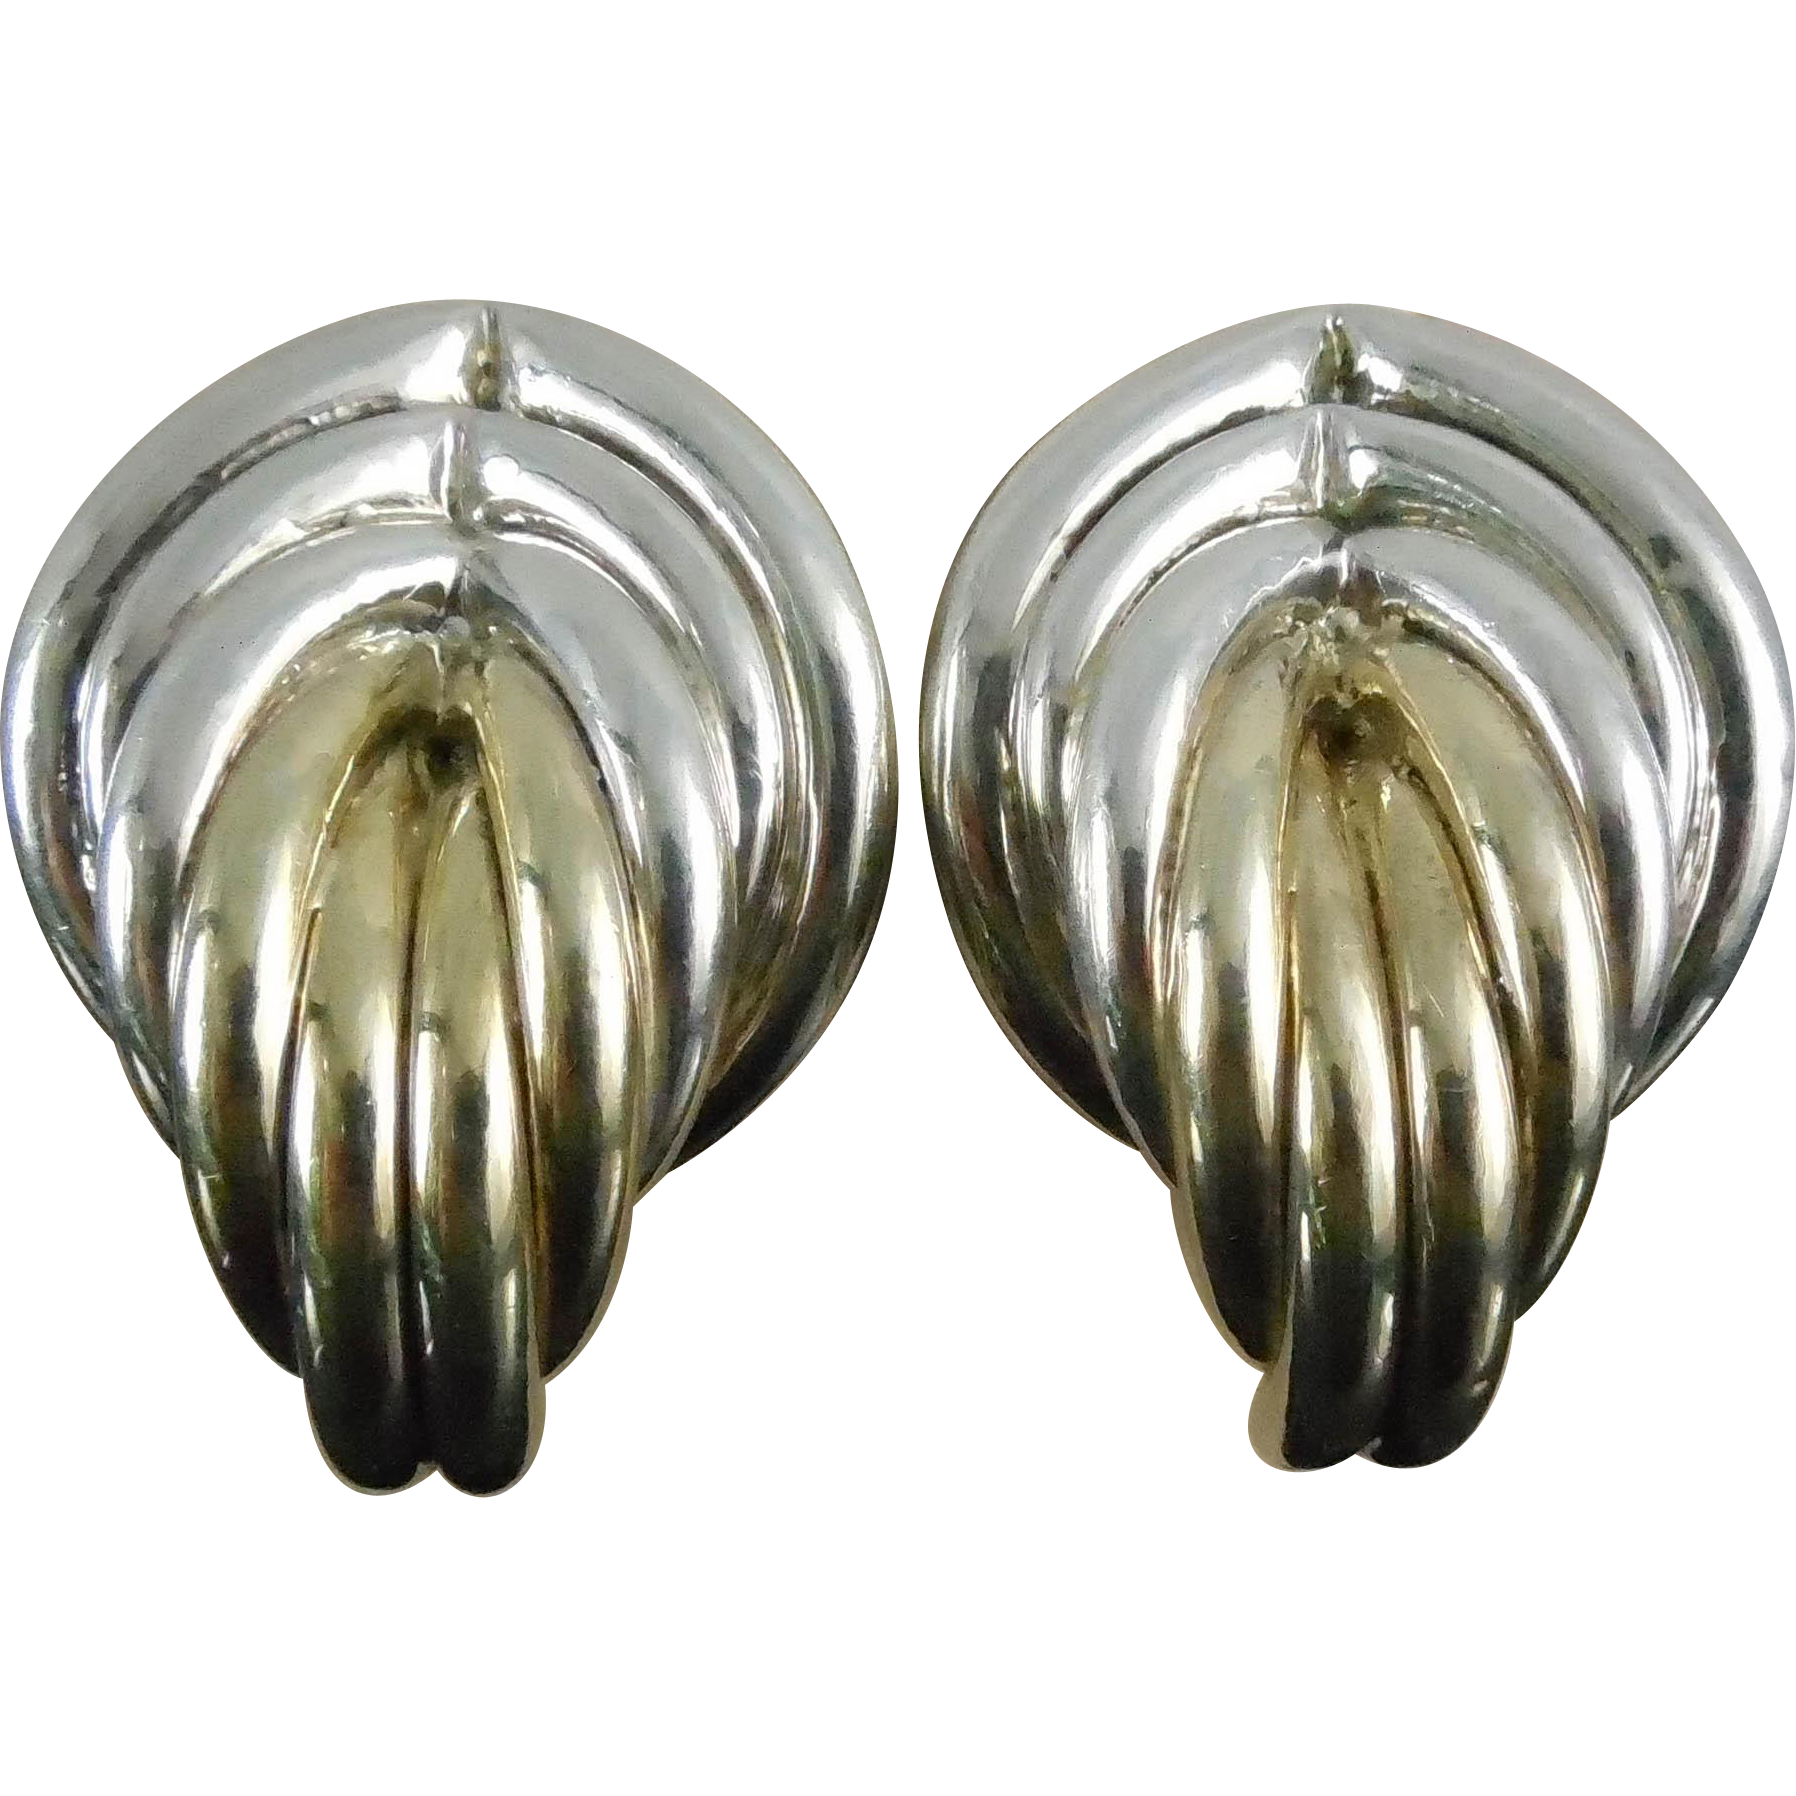 Designer Signed Brian Bergner Big Electroform Sterling Silver Earrings - Two Tone In Silver & Gold